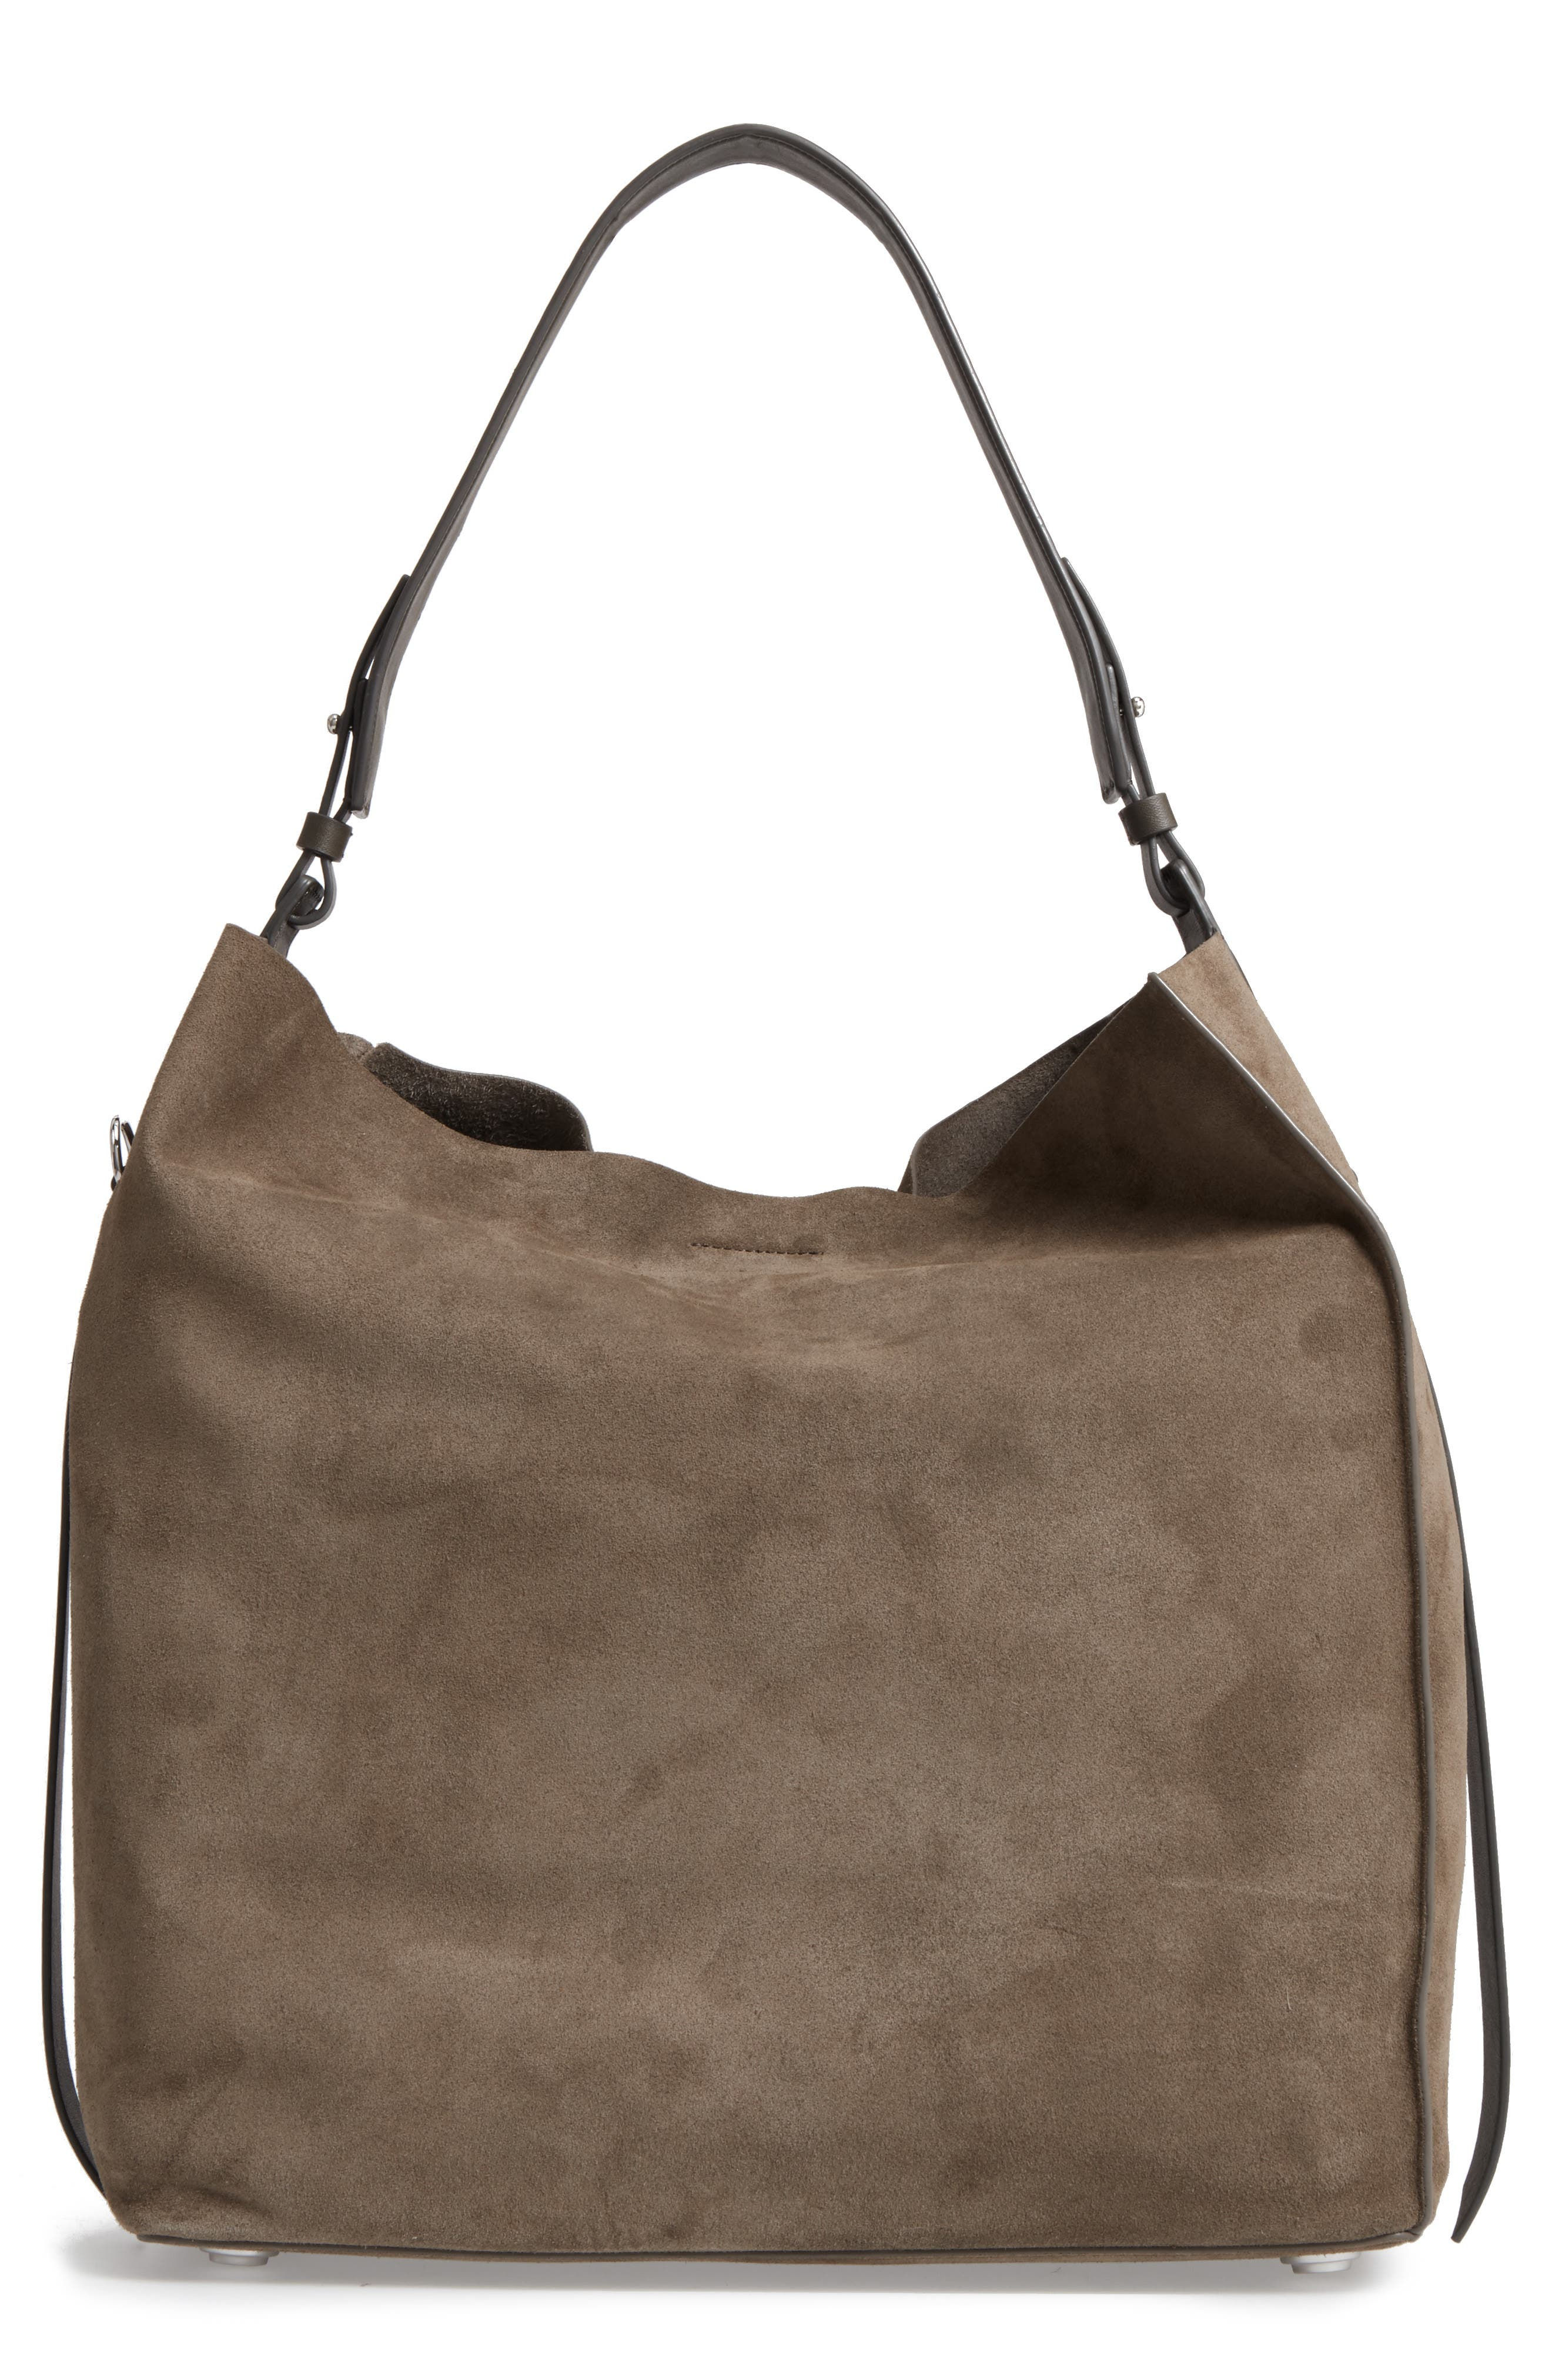 ALLSAINTS 'Paradise - North/South' Suede Tote